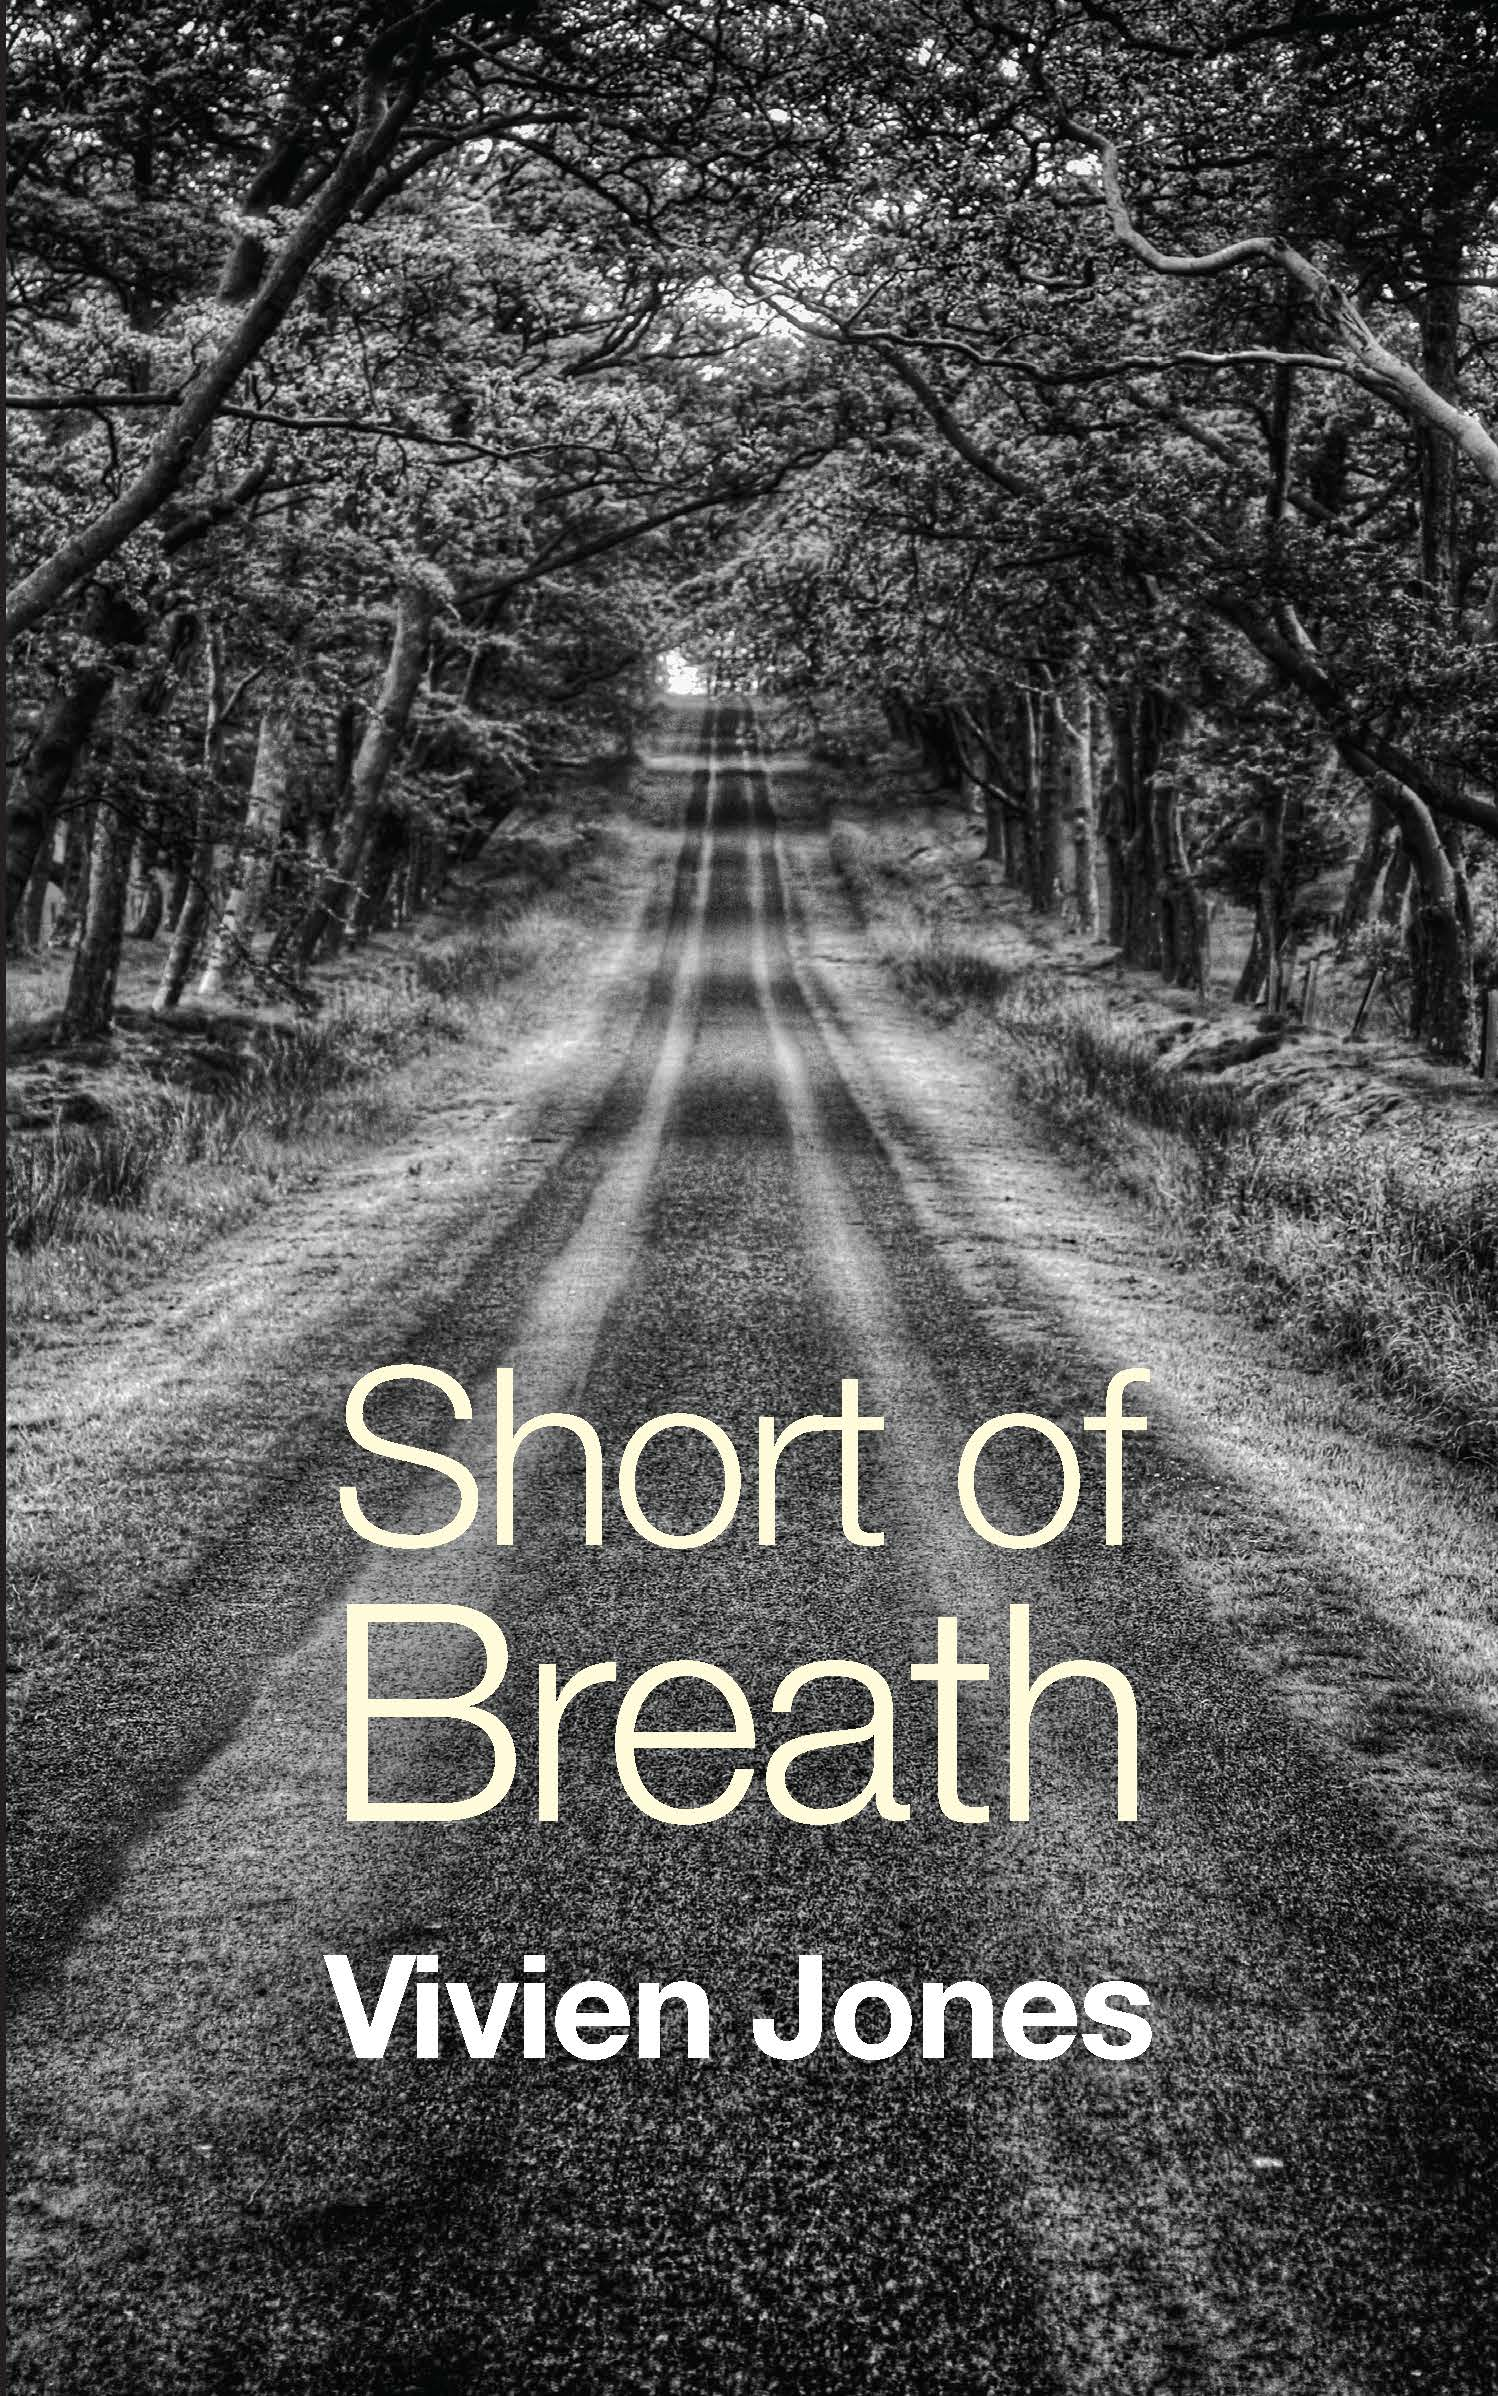 Short of Breath by Vivien Jones